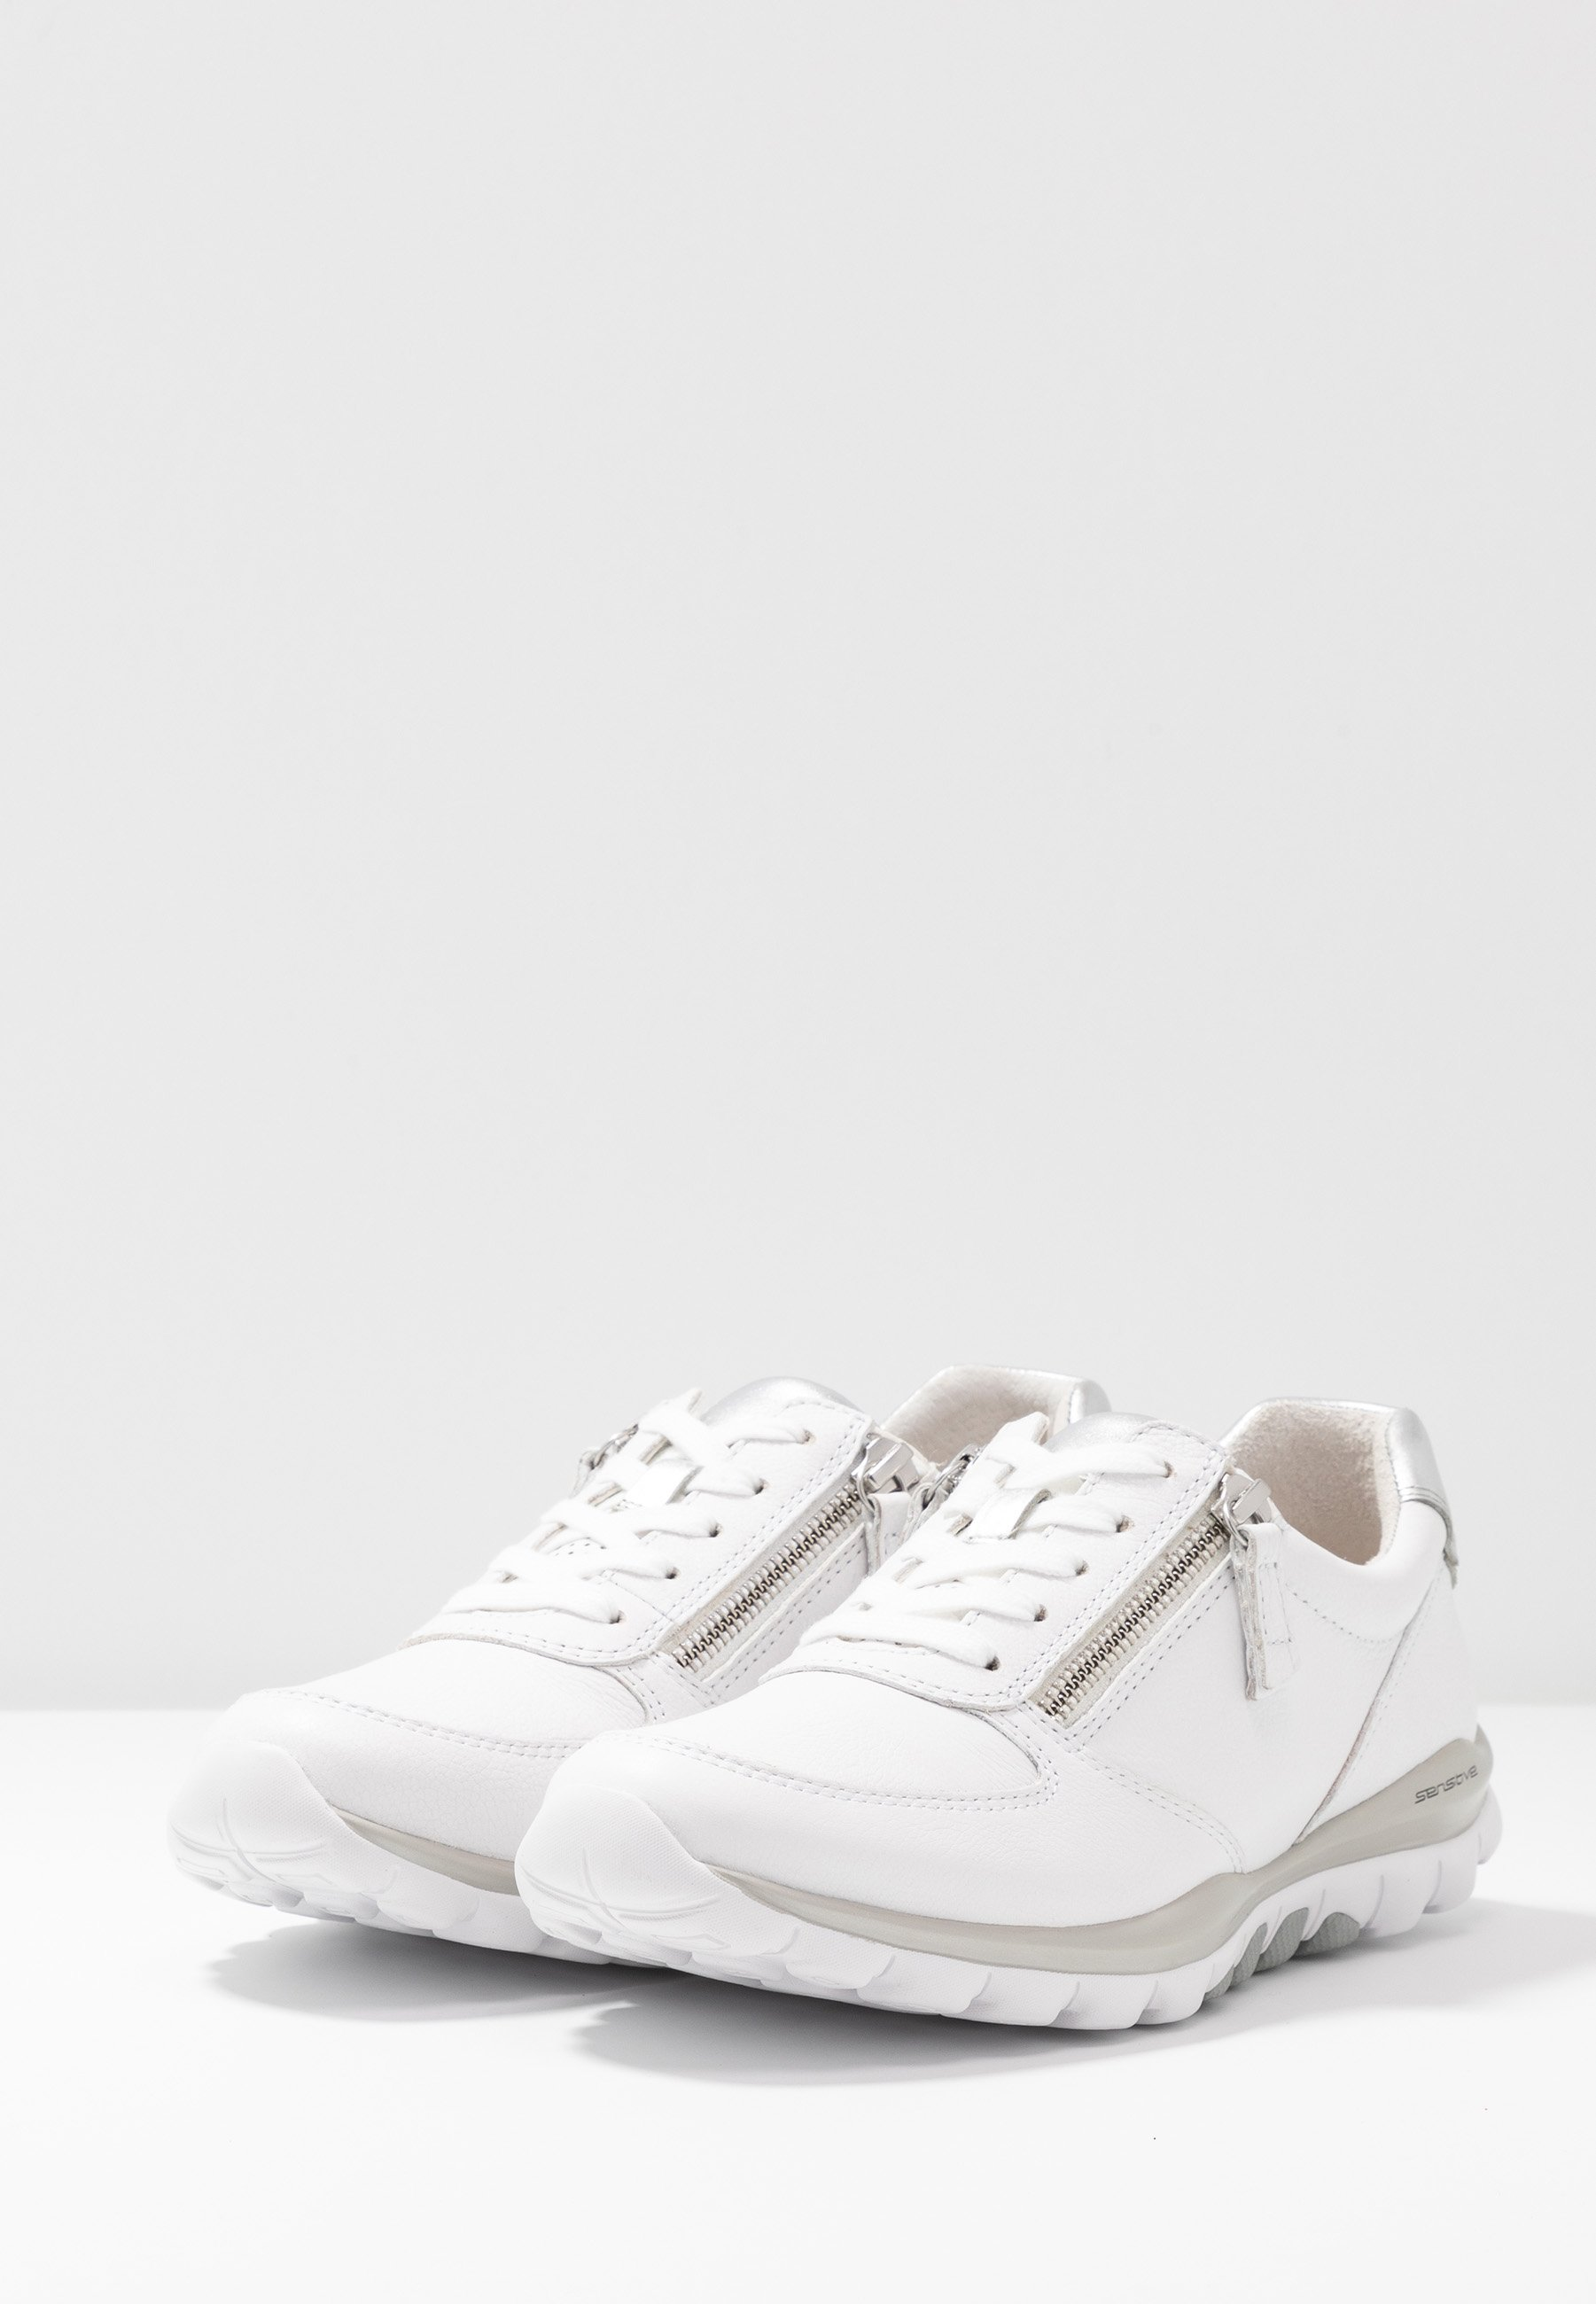 Gabor Comfort Rolling Soft - Sneakers Weiß/silber